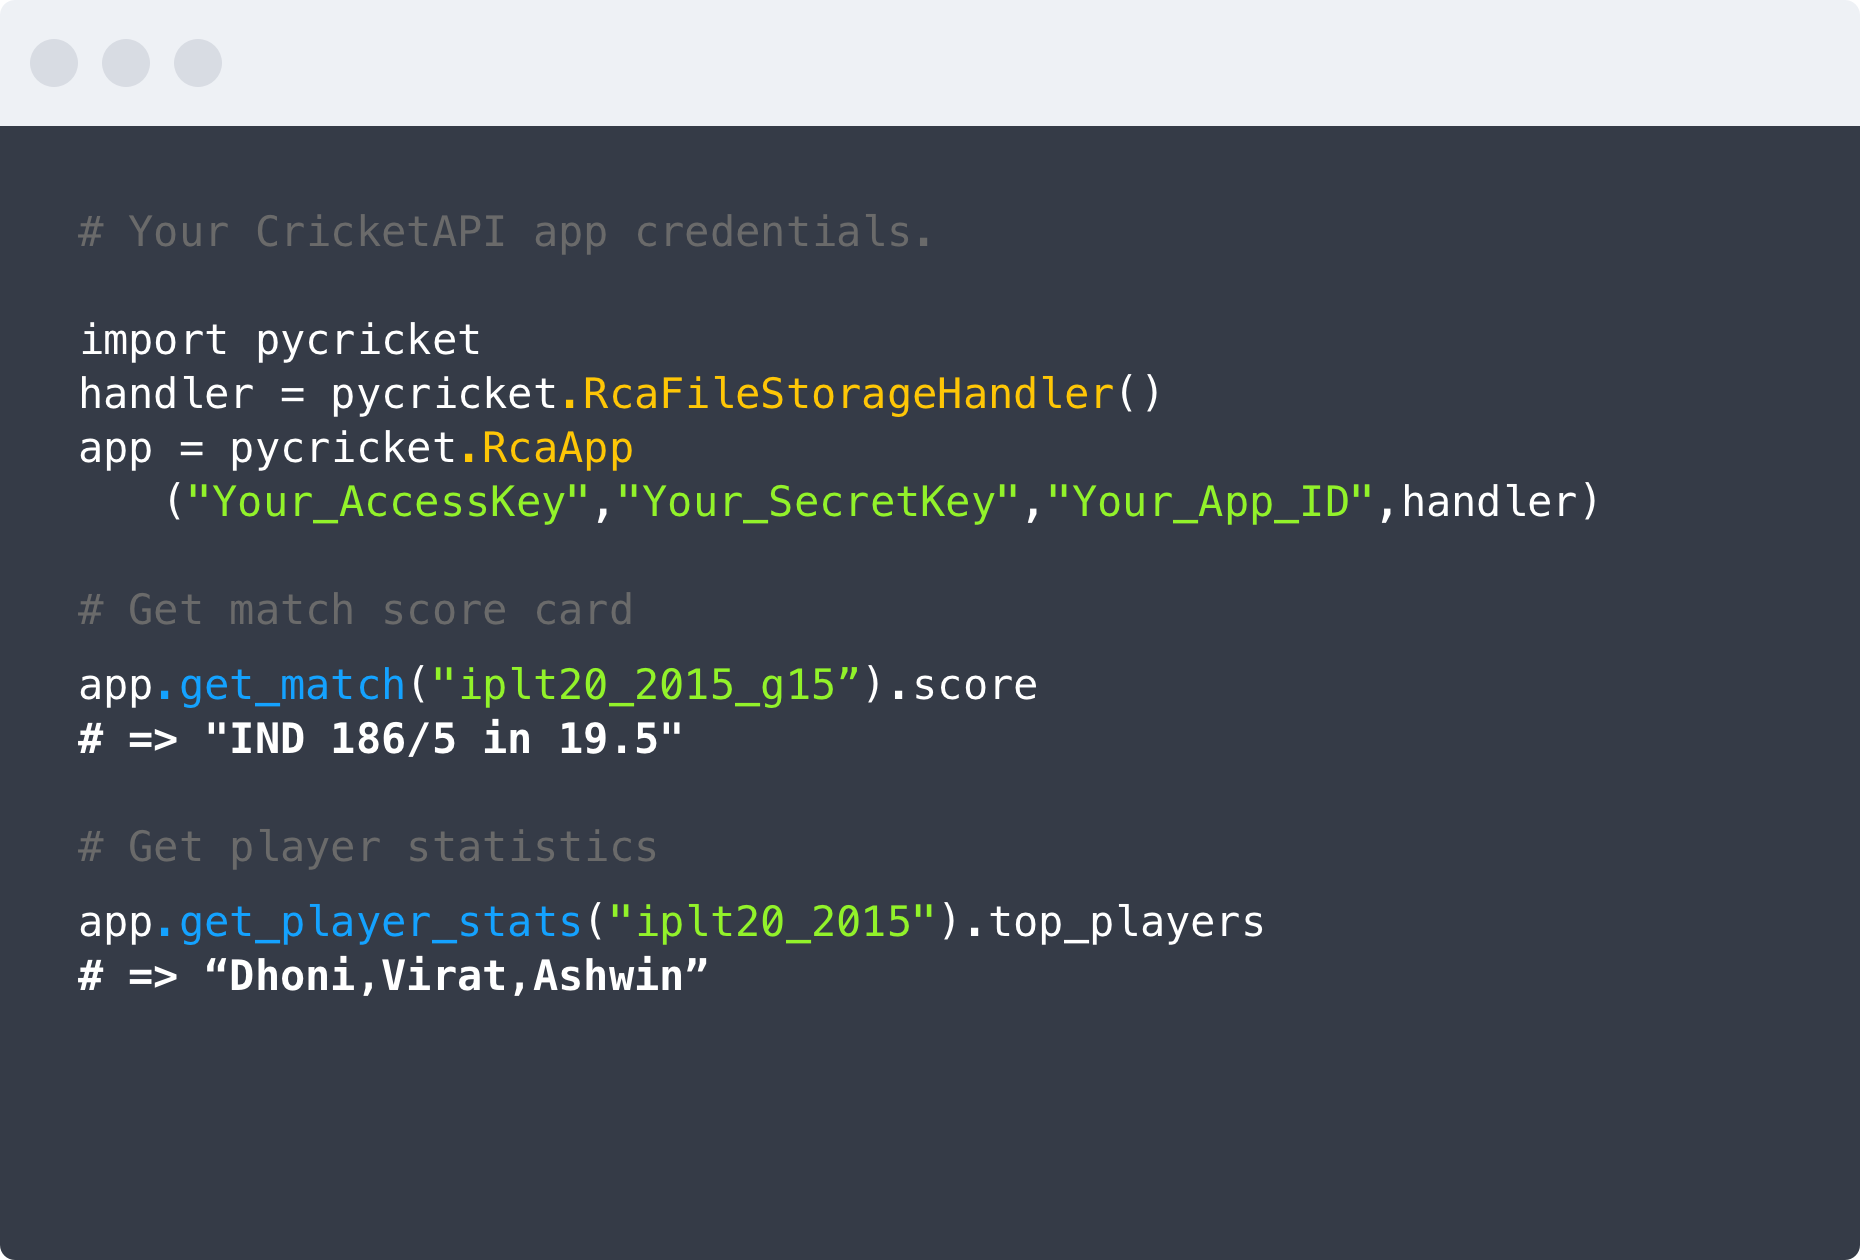 cricket-api